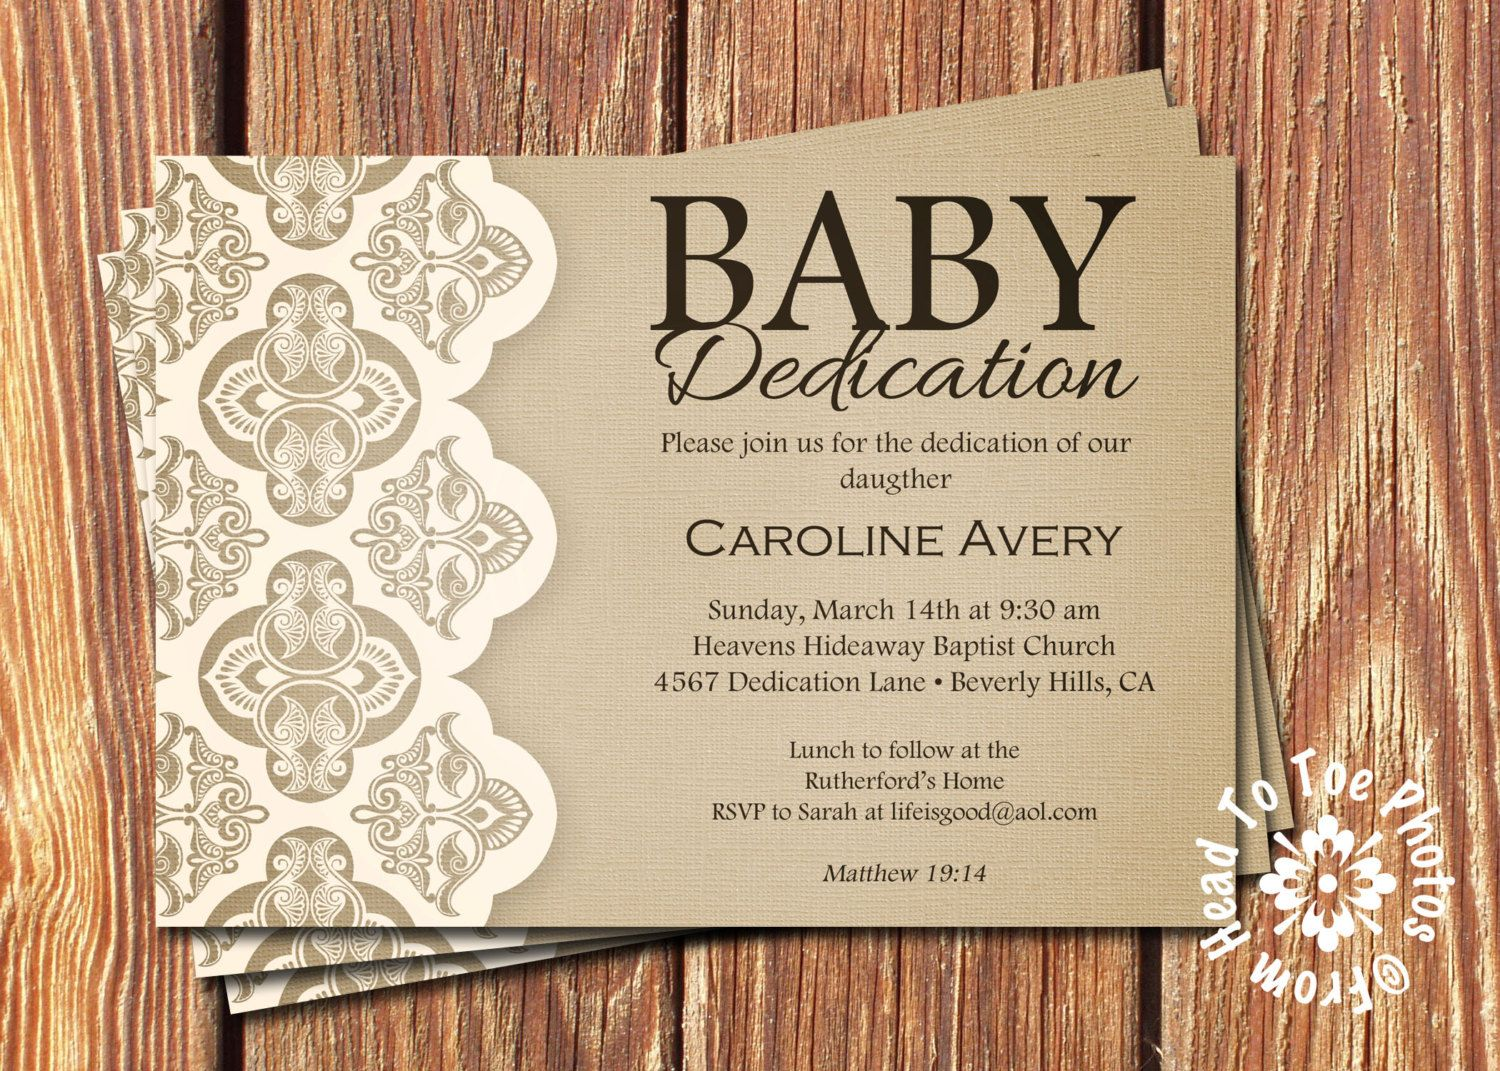 Baby Dedication Invitations by FromHeadtoToeDesigns on Etsy | Baby ...